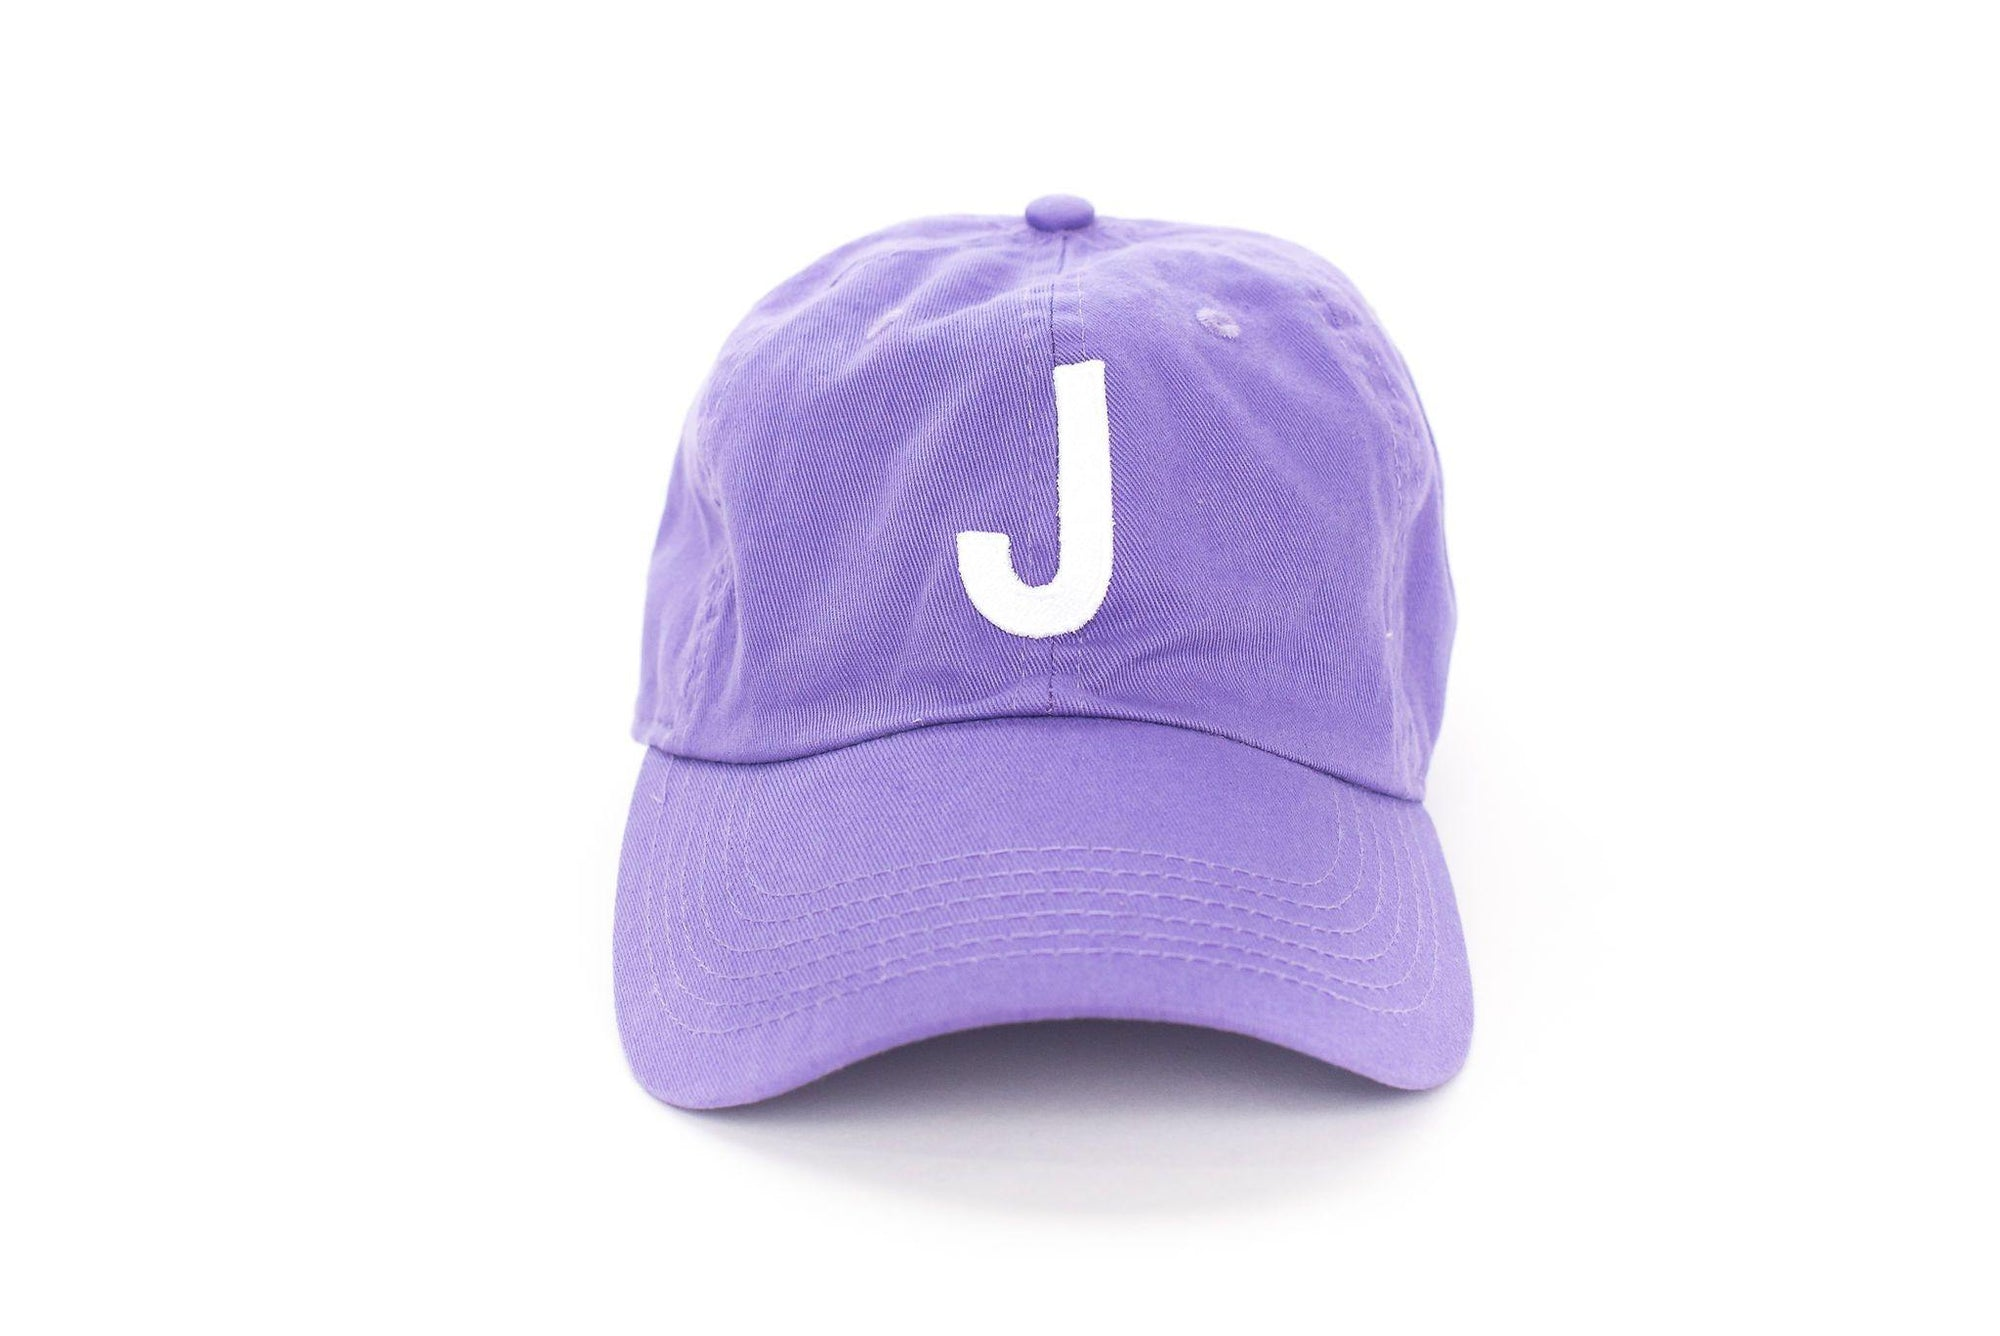 Imperfect Lavender Hats